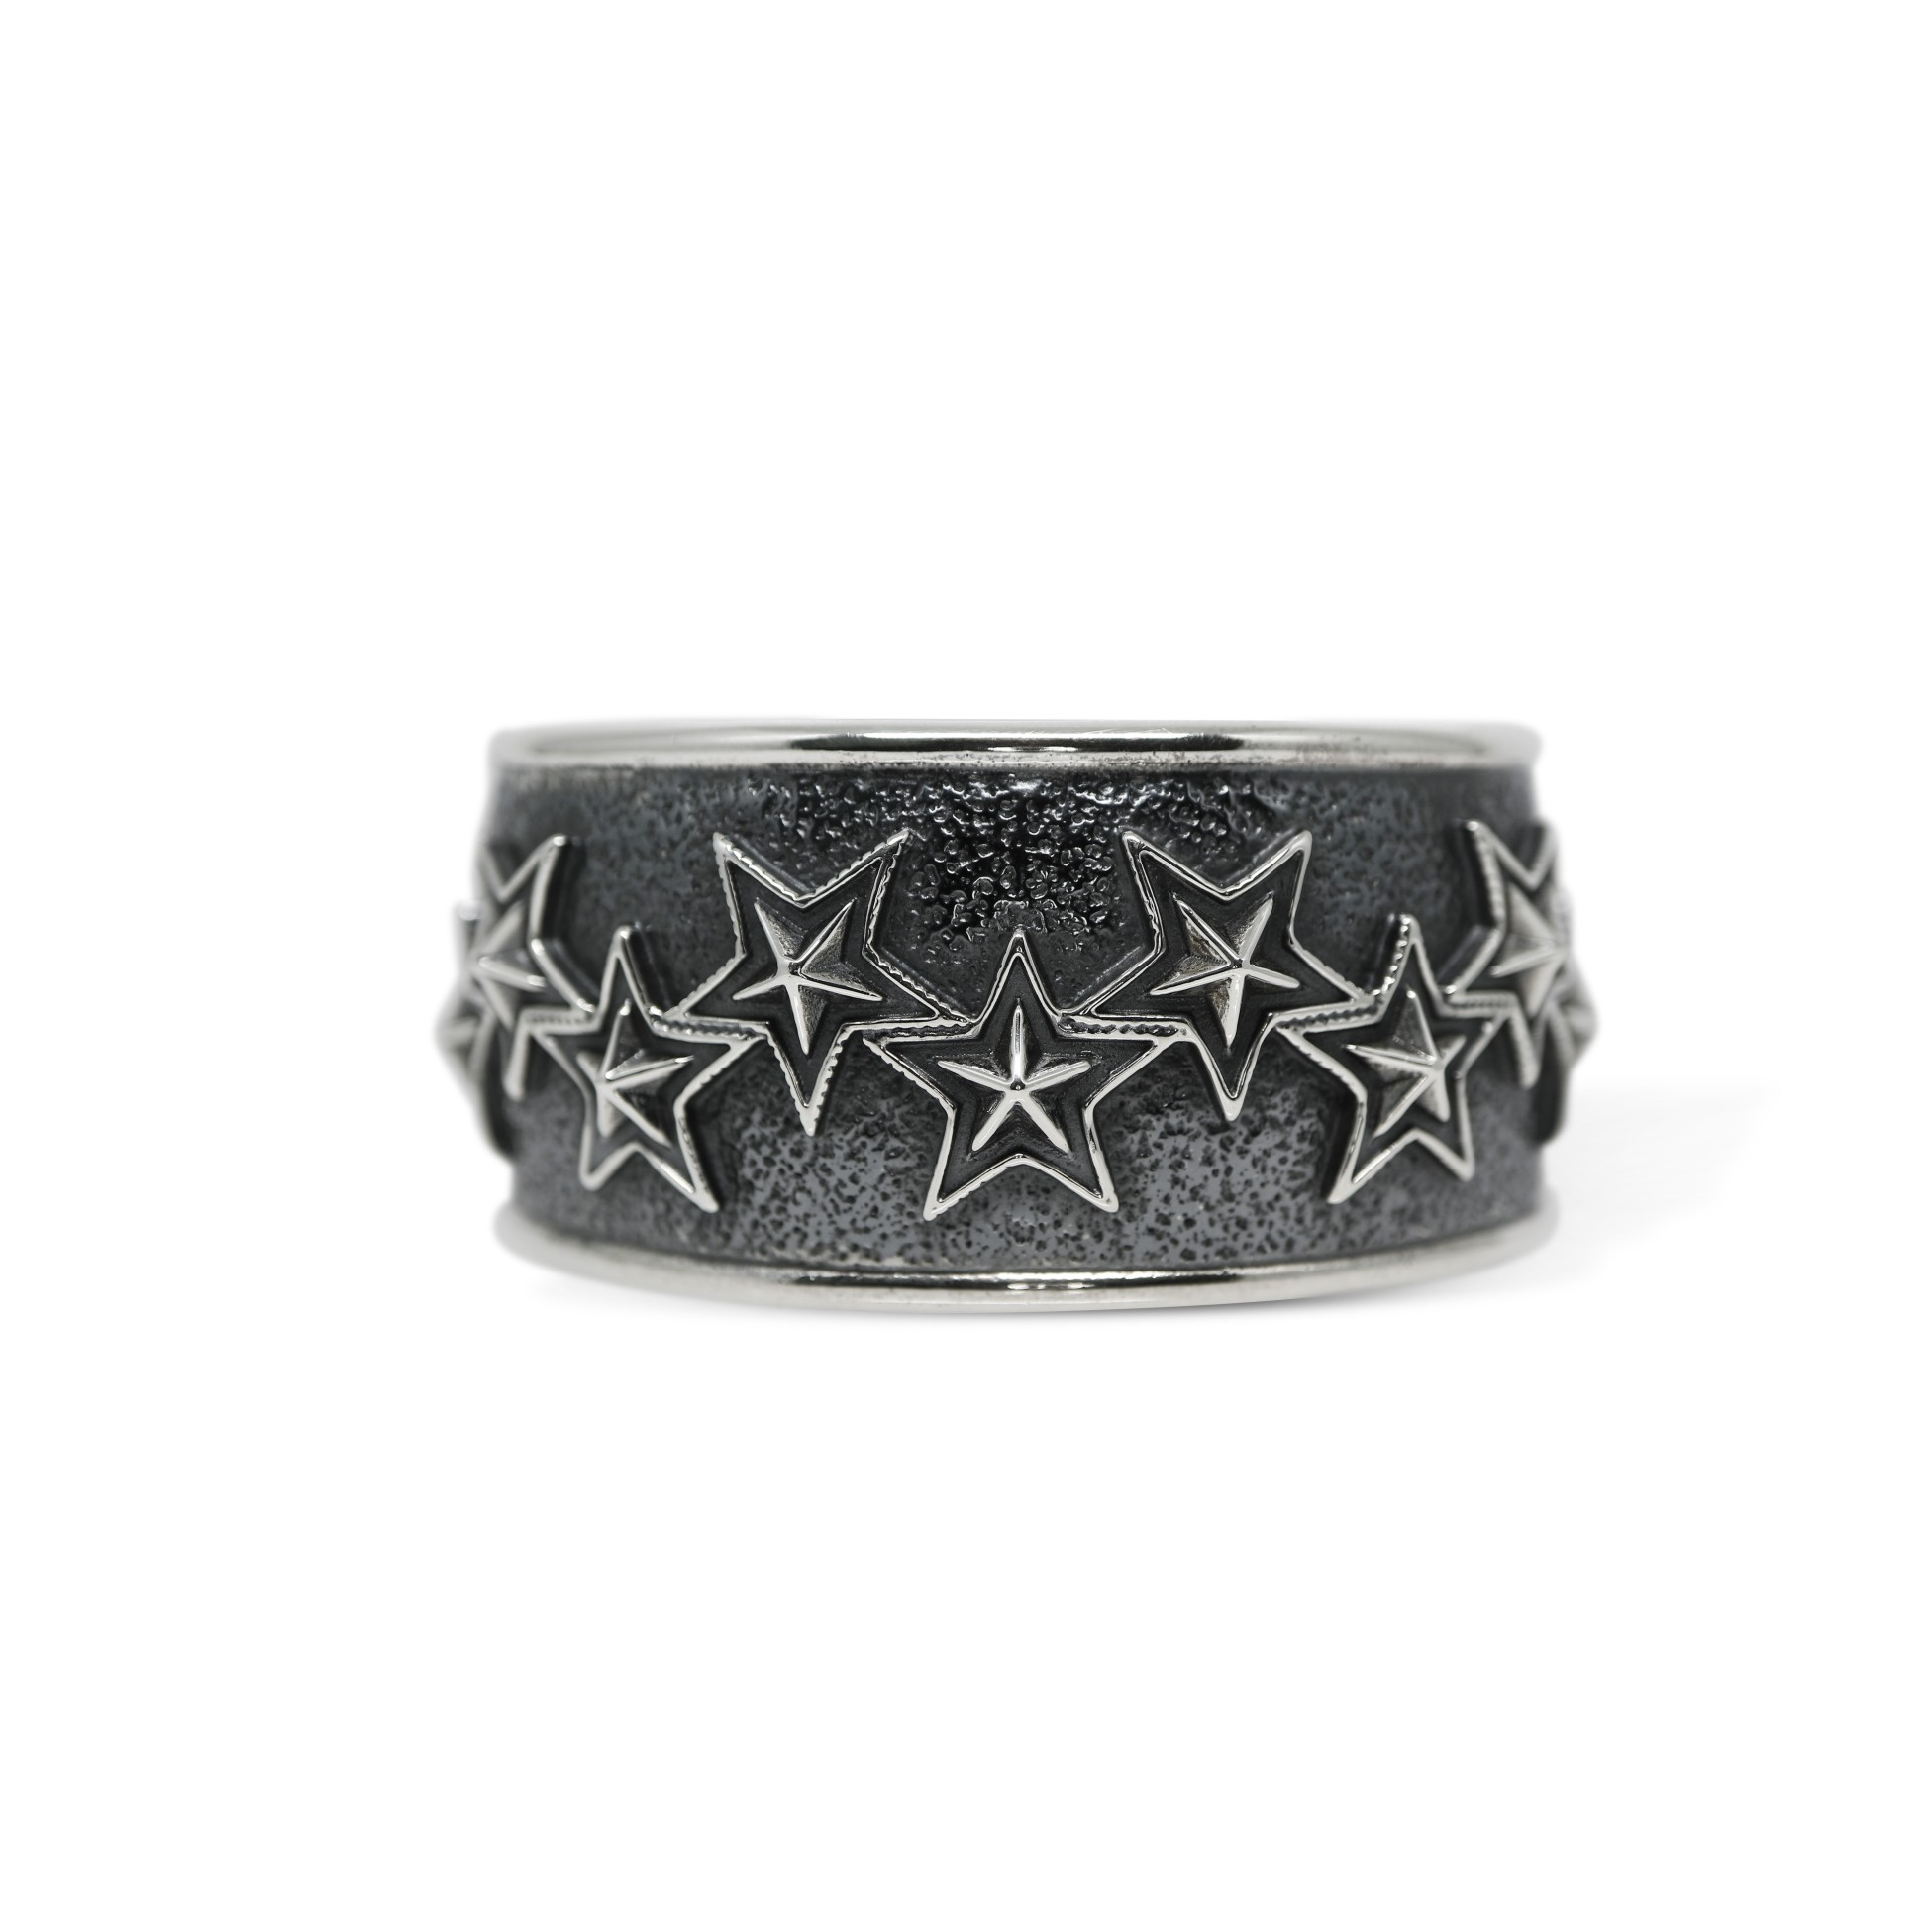 10 OUT OF 10 STARS CUFF [USD $2390]